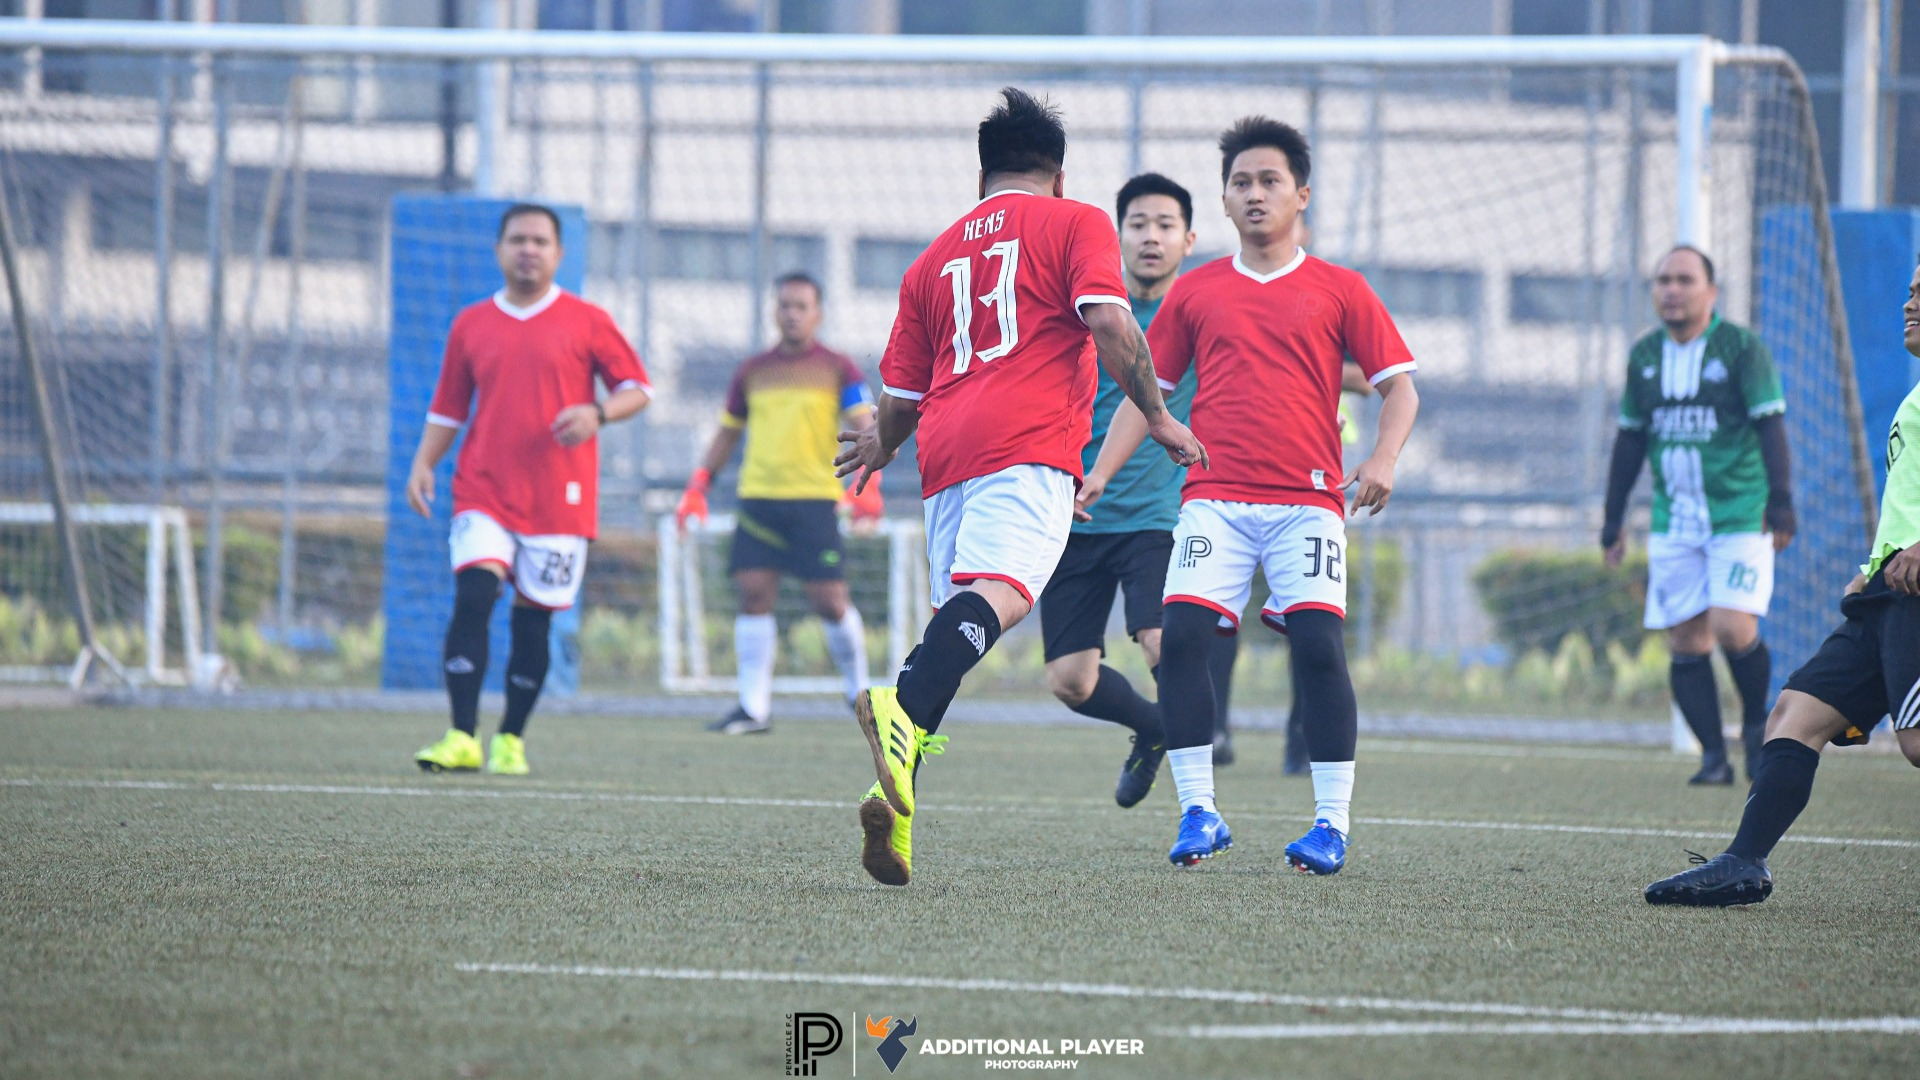 INTERNAL FOOTBALL PENTACLE RUGBY FIELD CF AND CB POSITION ONLY